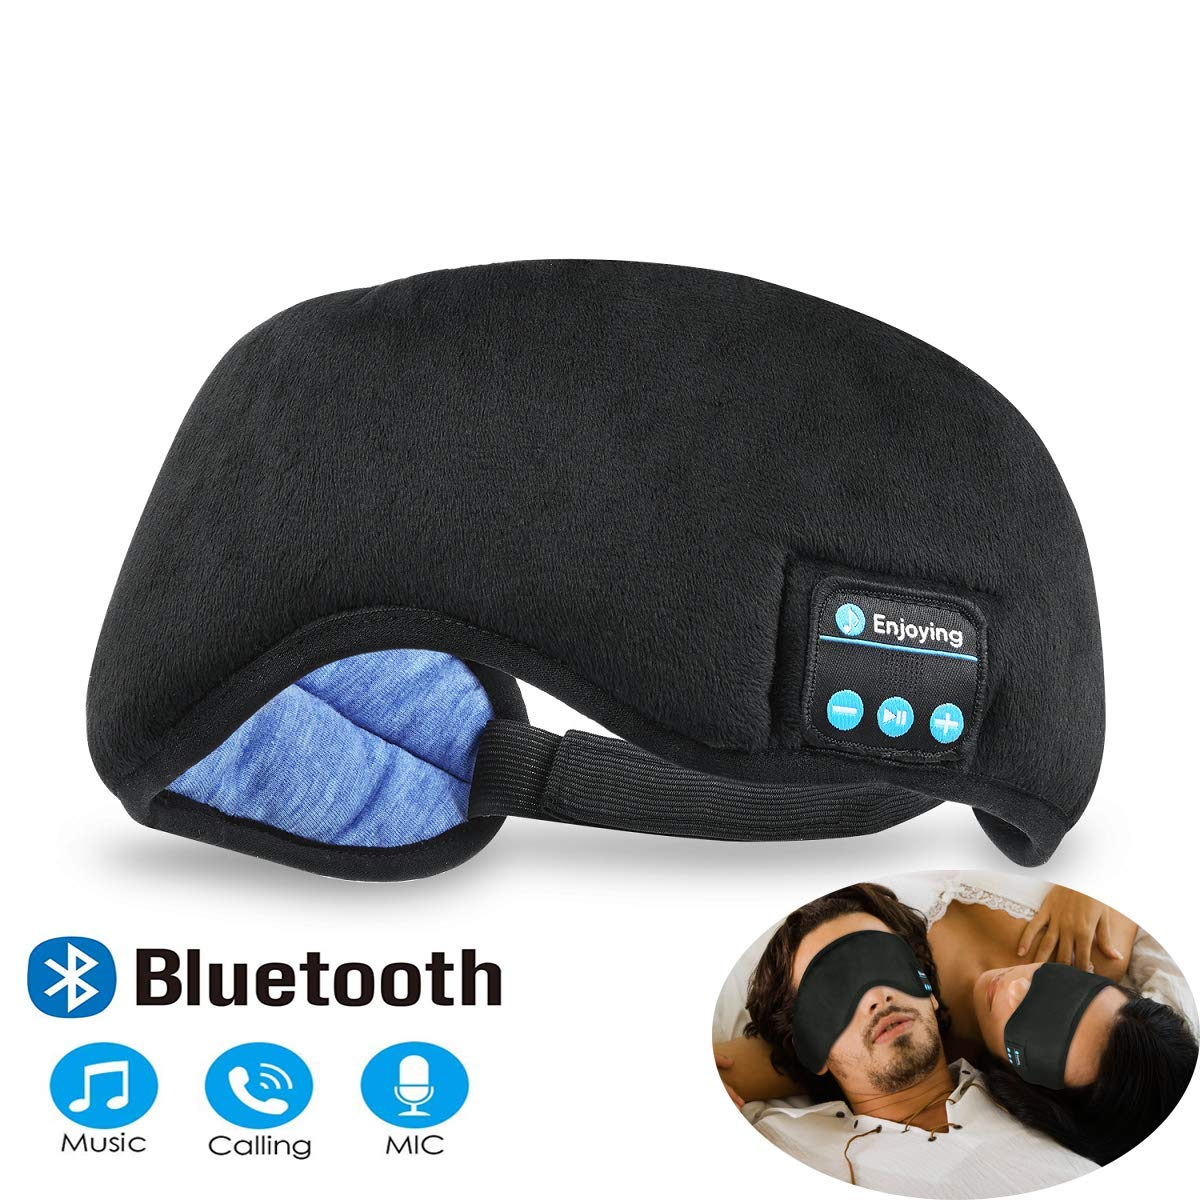 Bluetooth Sleeping Eye Mask Headphones, Black Wireless Sleep Headphone, Built-in Bluetooth 4.2 Speakers Microphone Adjustable&Washable, Perfect for Air Travel, Siesta